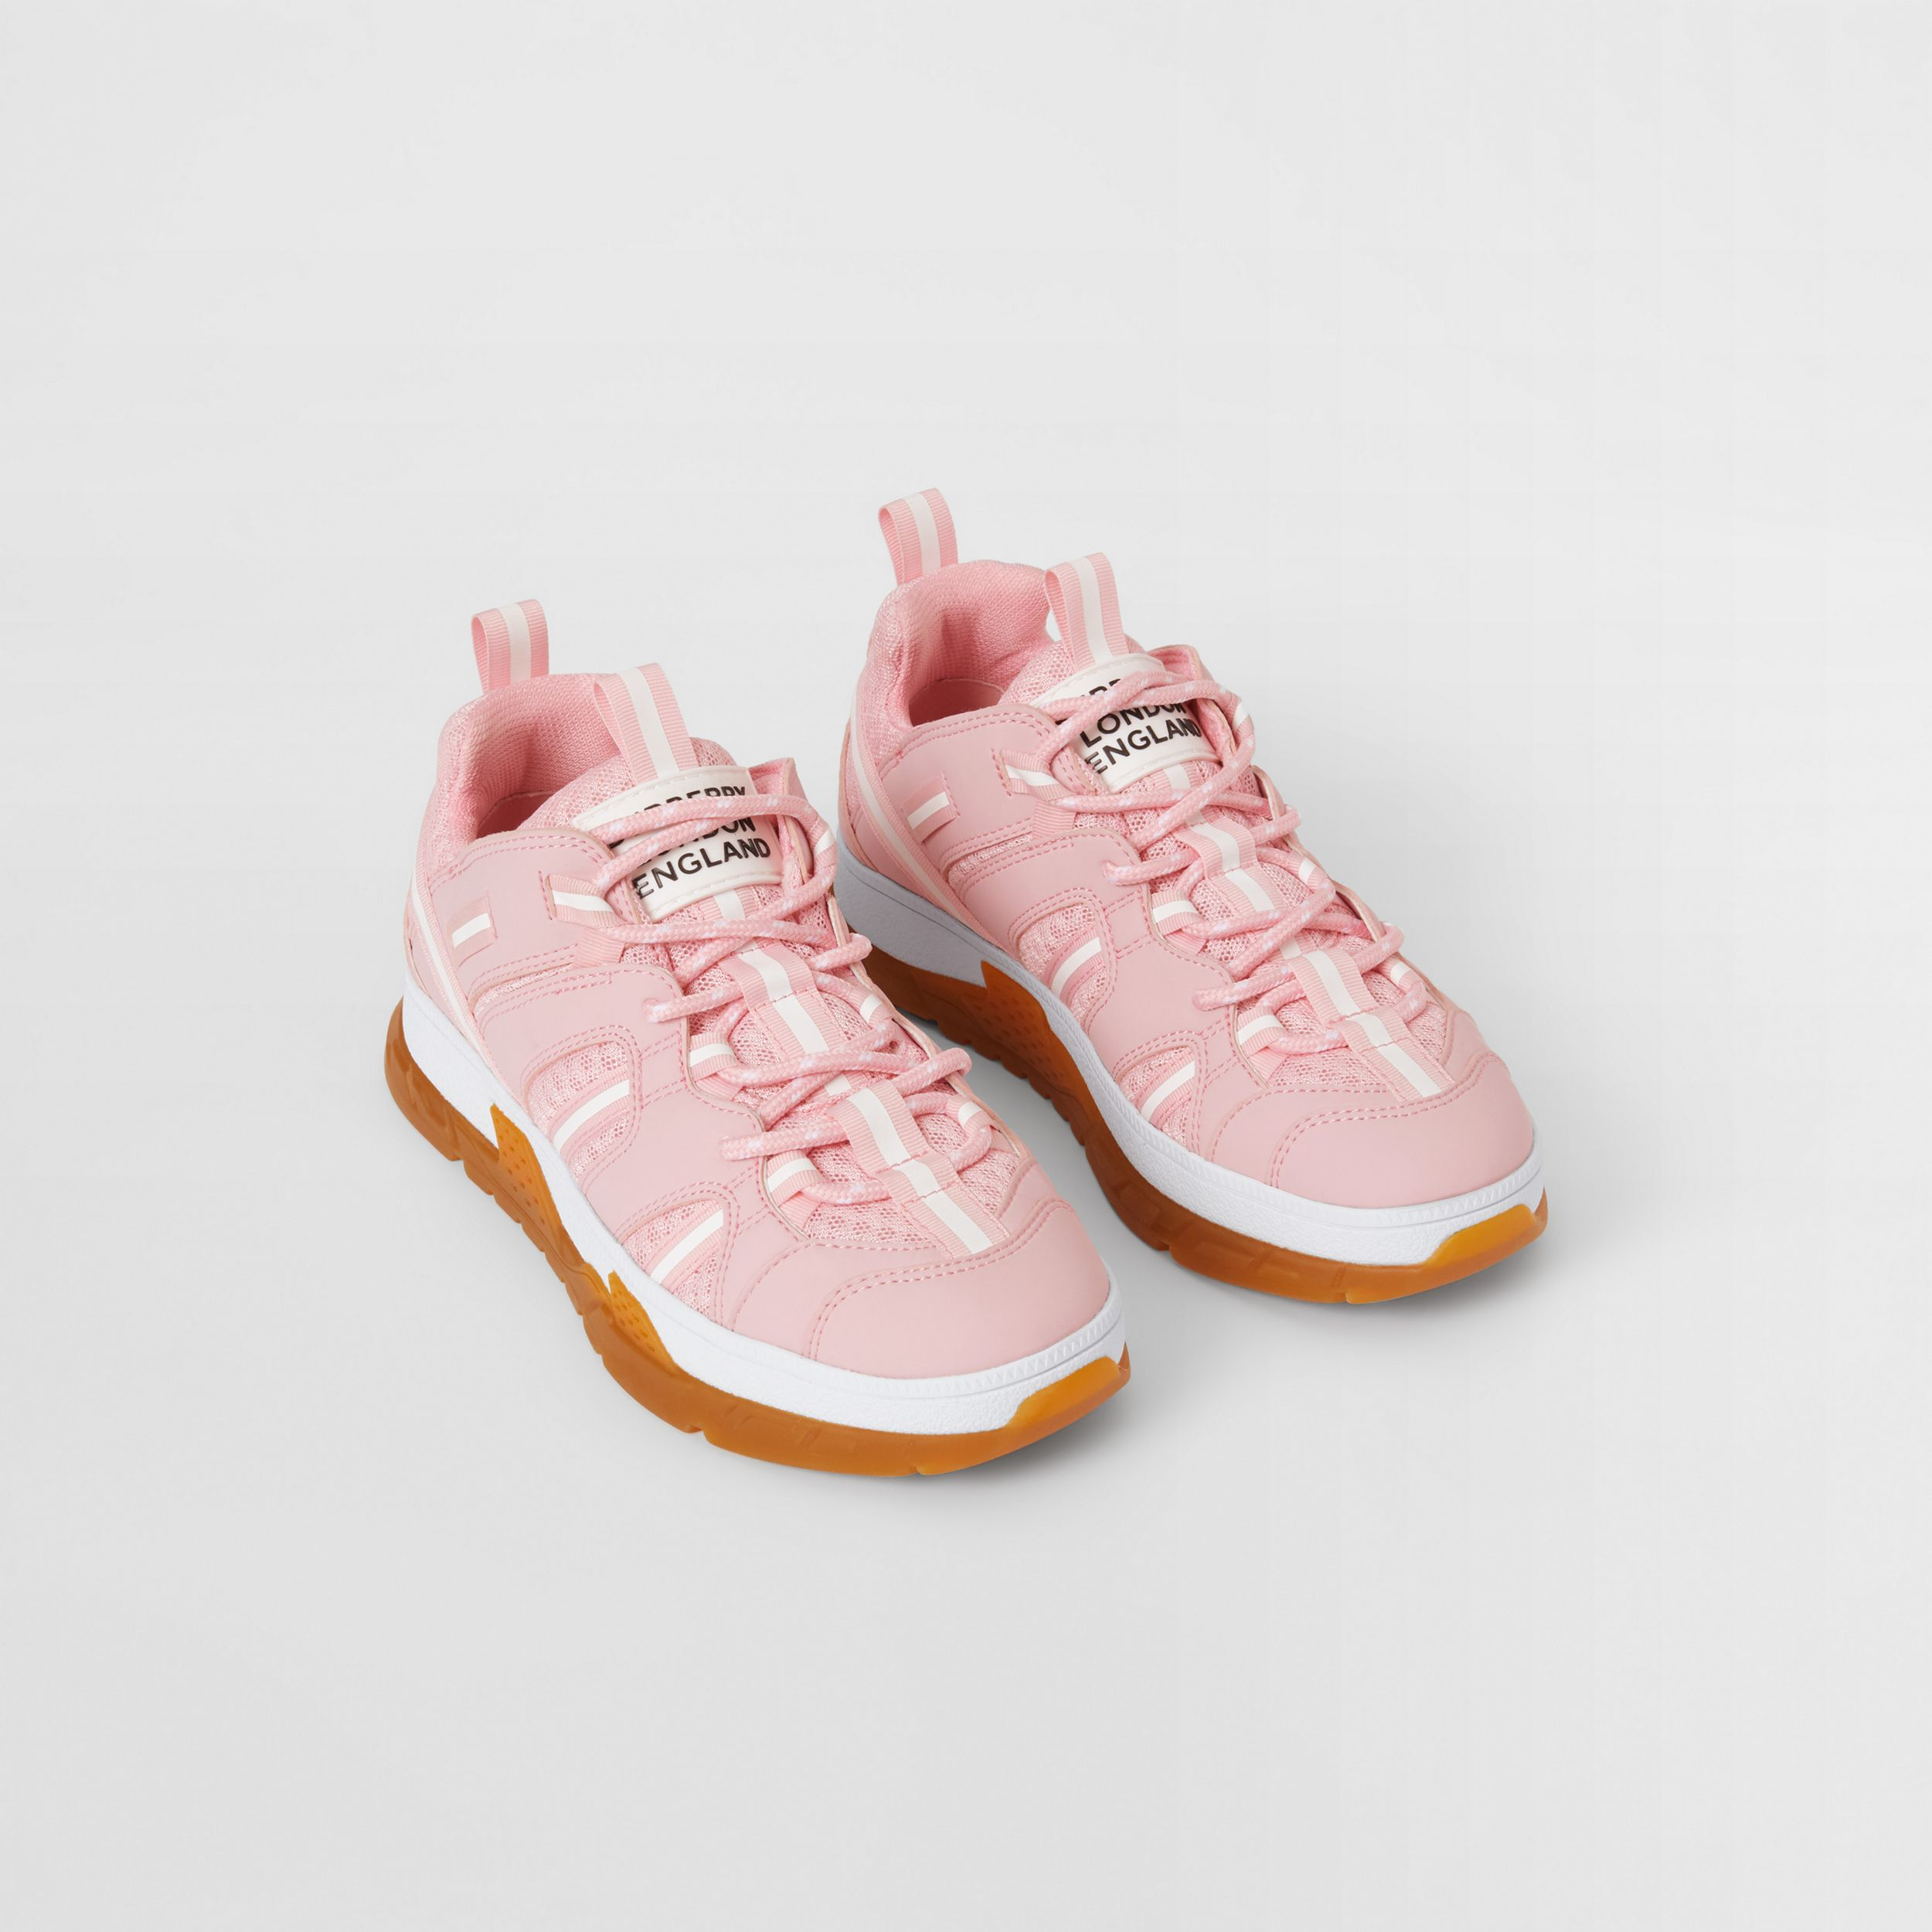 Nylon and Mesh Union Sneakers in Candy Pink - Children | Burberry - 1